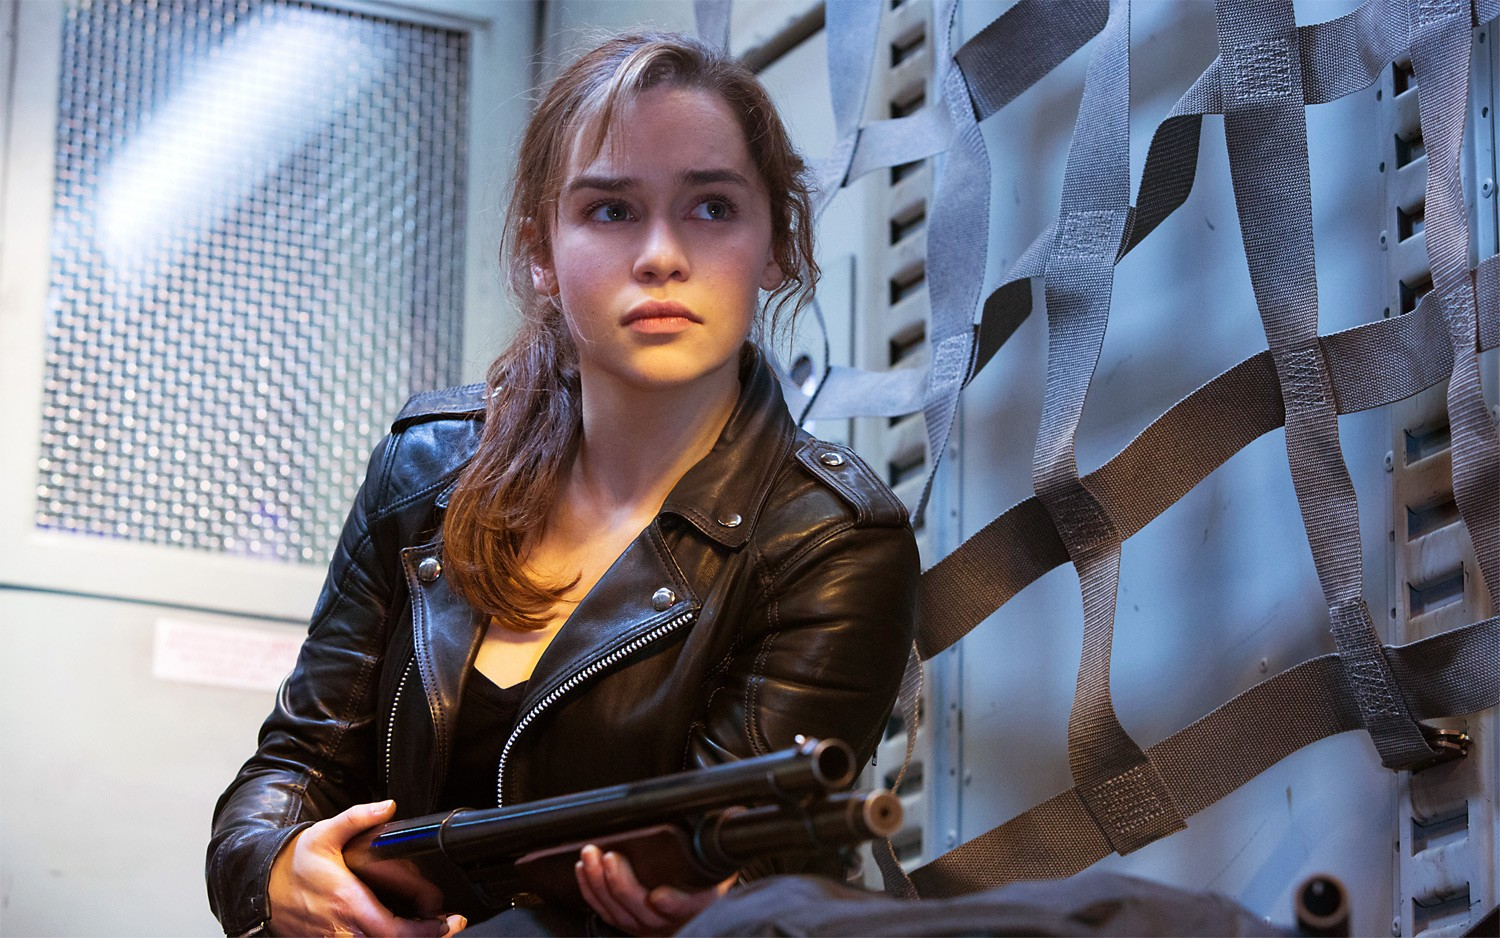 Emilia Clarke as the new Sarah Connor in Terminator Genisys (2015)